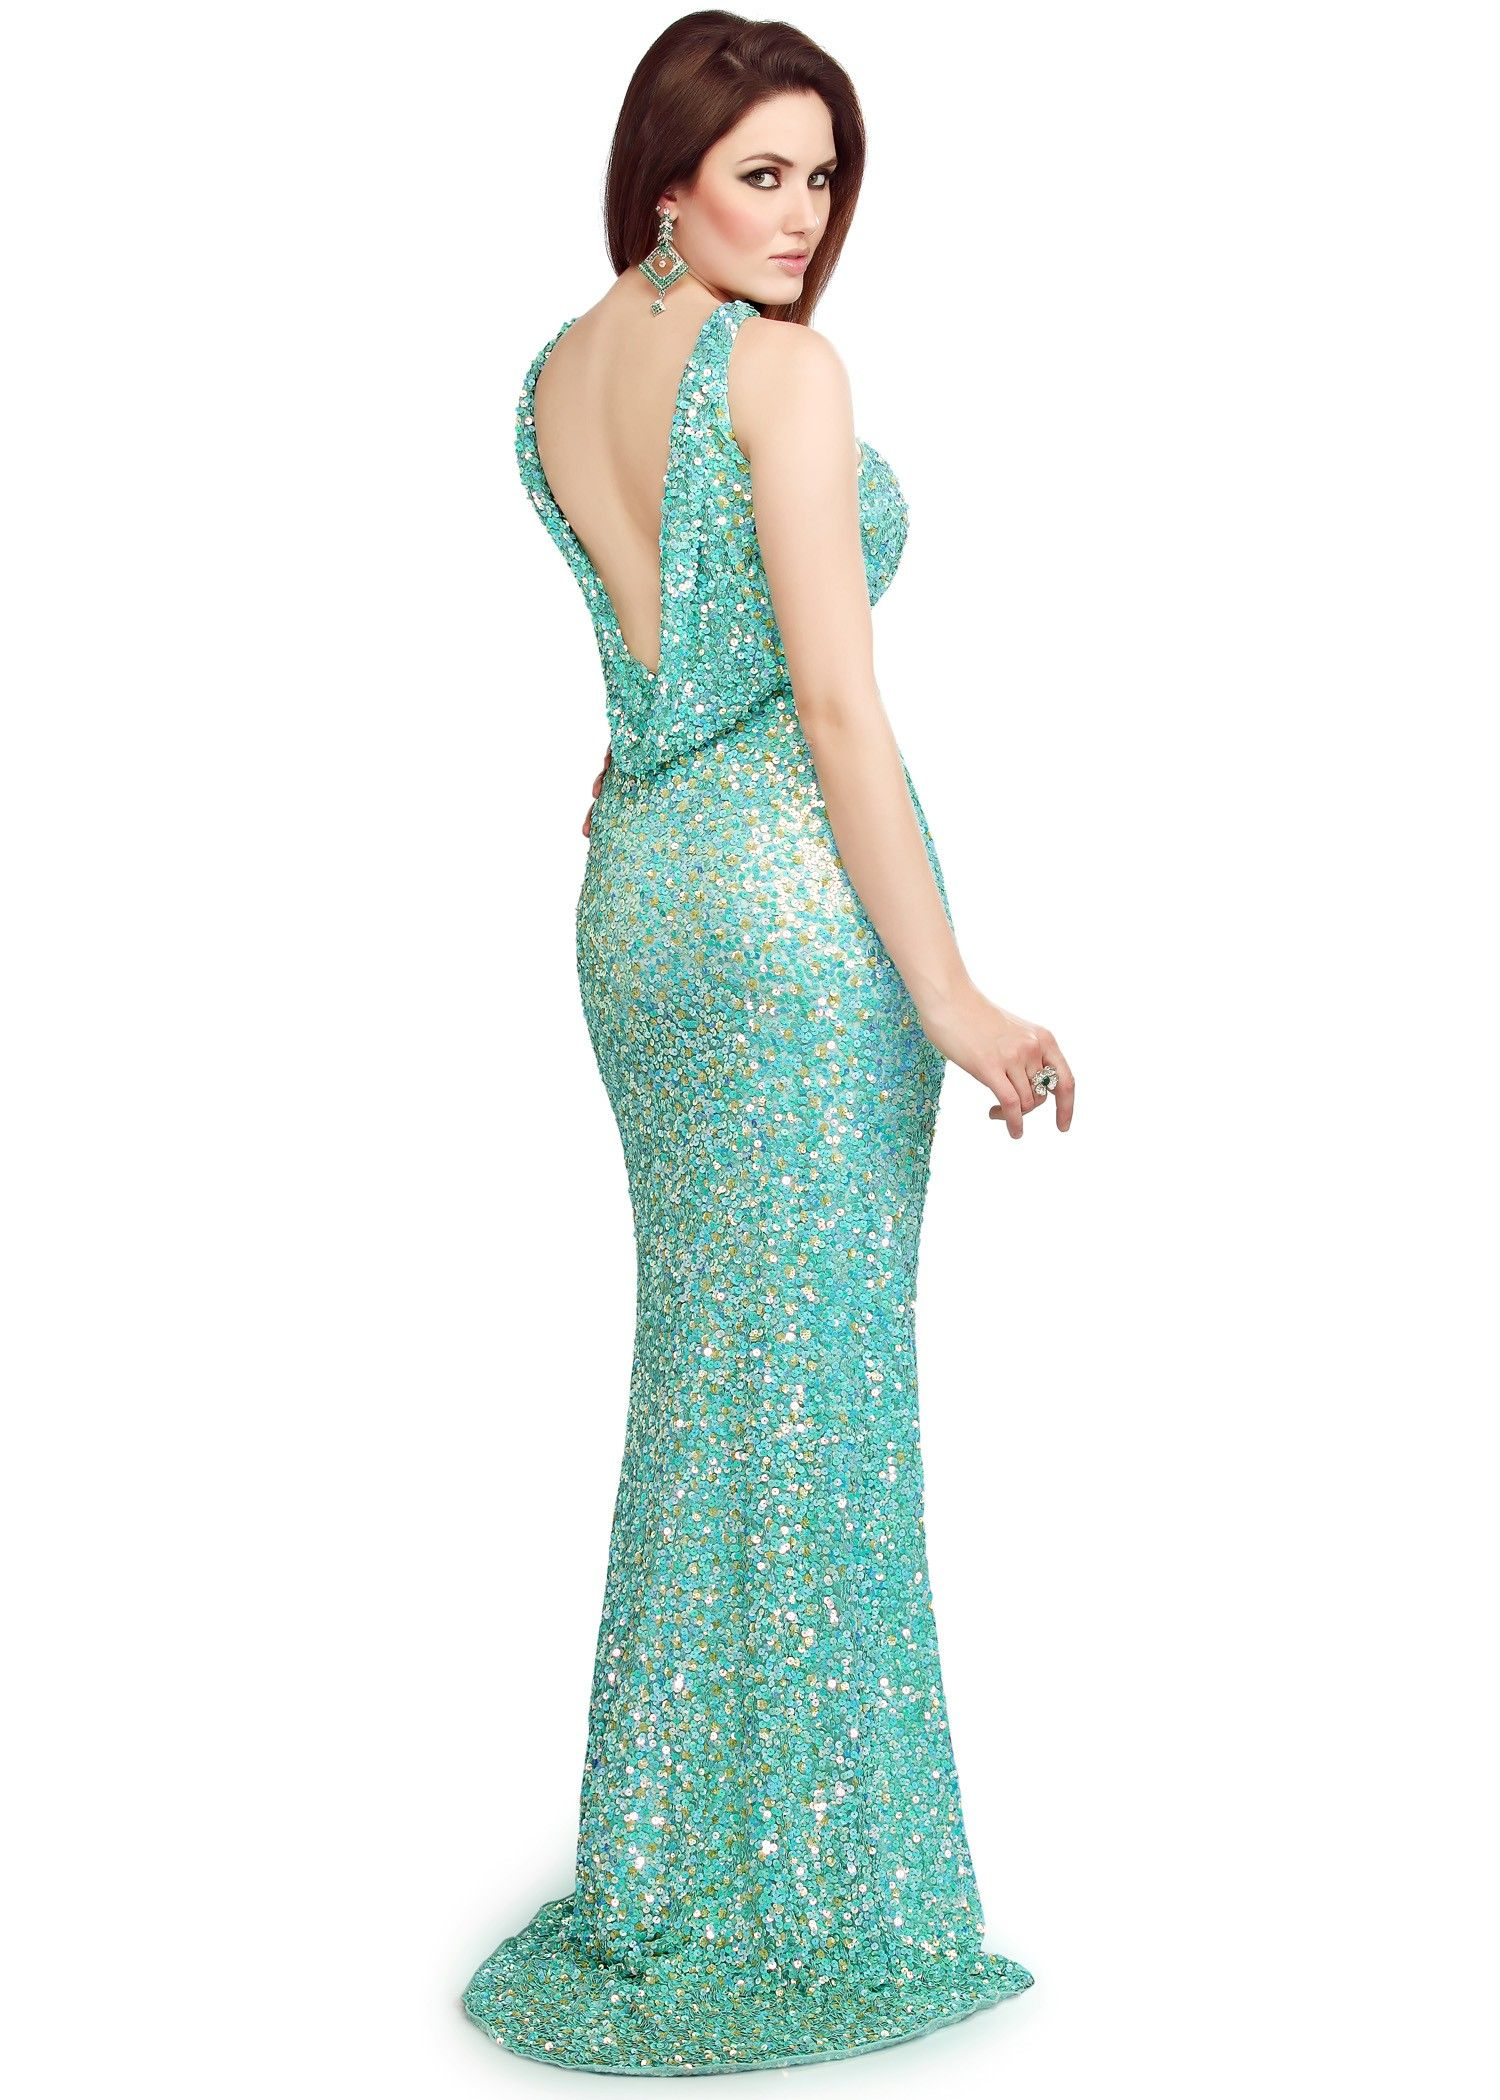 Primavera 9695 - Sparkly Aqua Open Back Sequin Prom Dress | Bringing ...